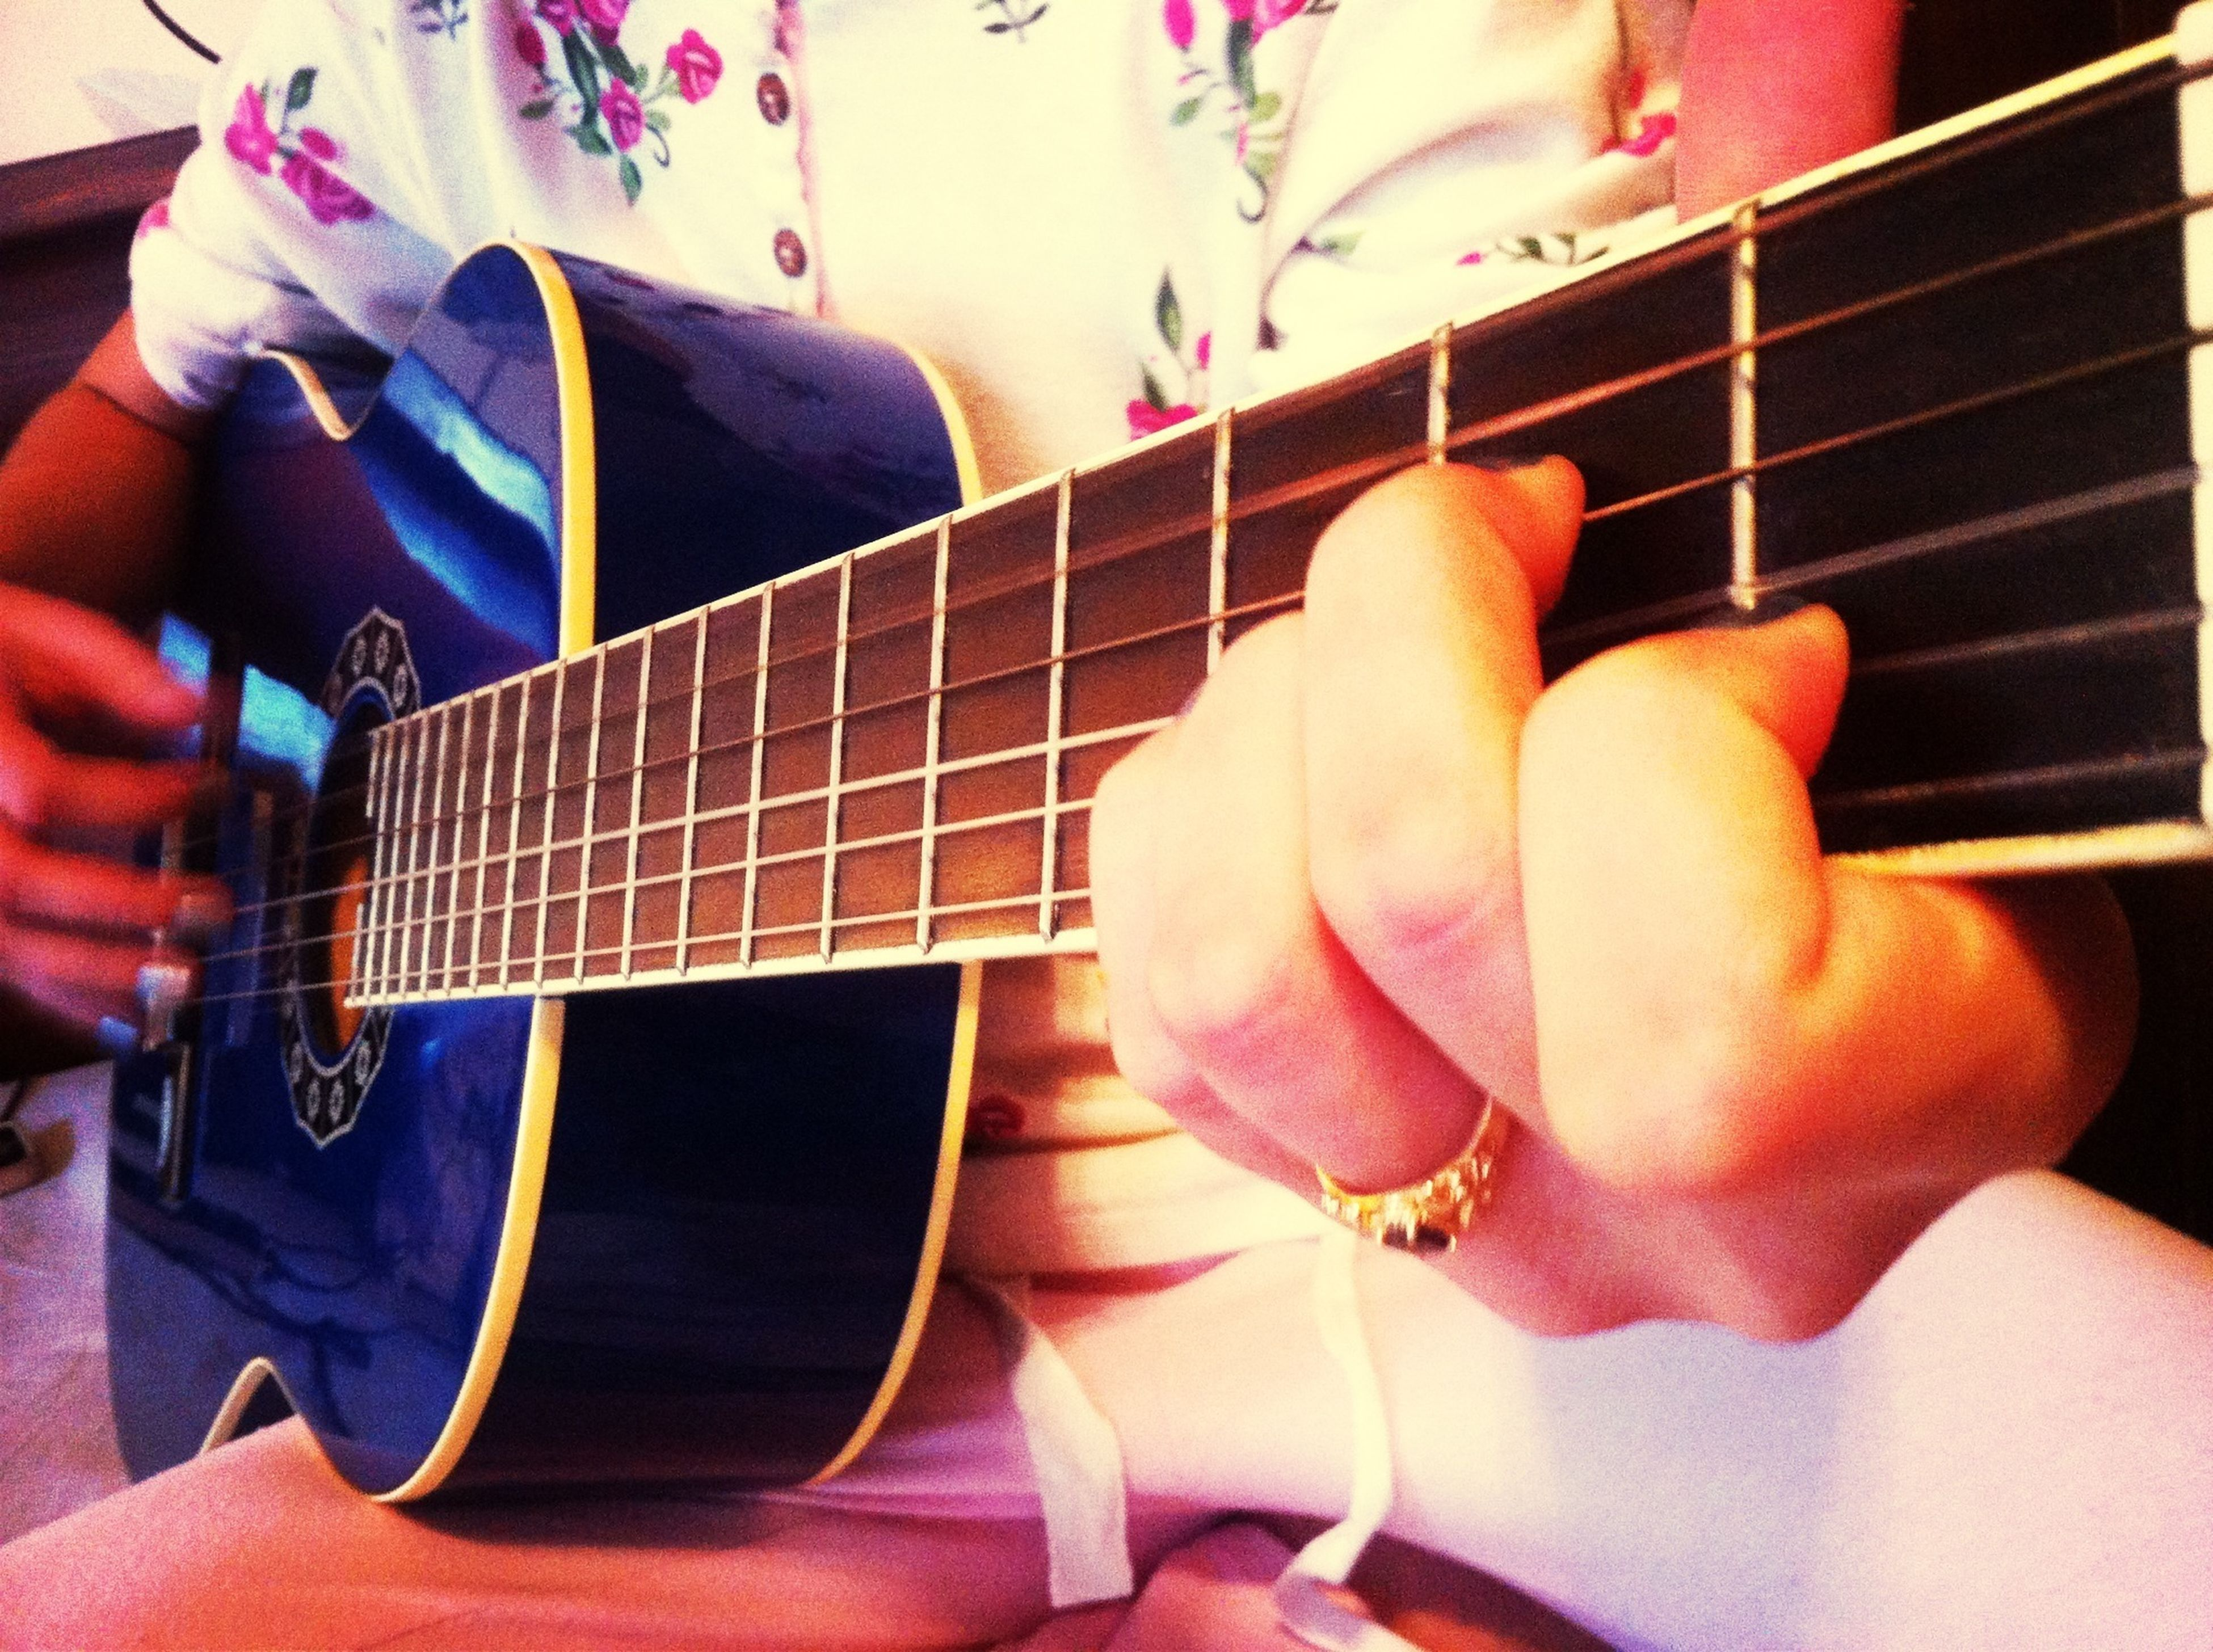 indoors, person, lifestyles, part of, music, musical instrument, holding, leisure activity, men, arts culture and entertainment, guitar, high angle view, sitting, technology, close-up, hobbies